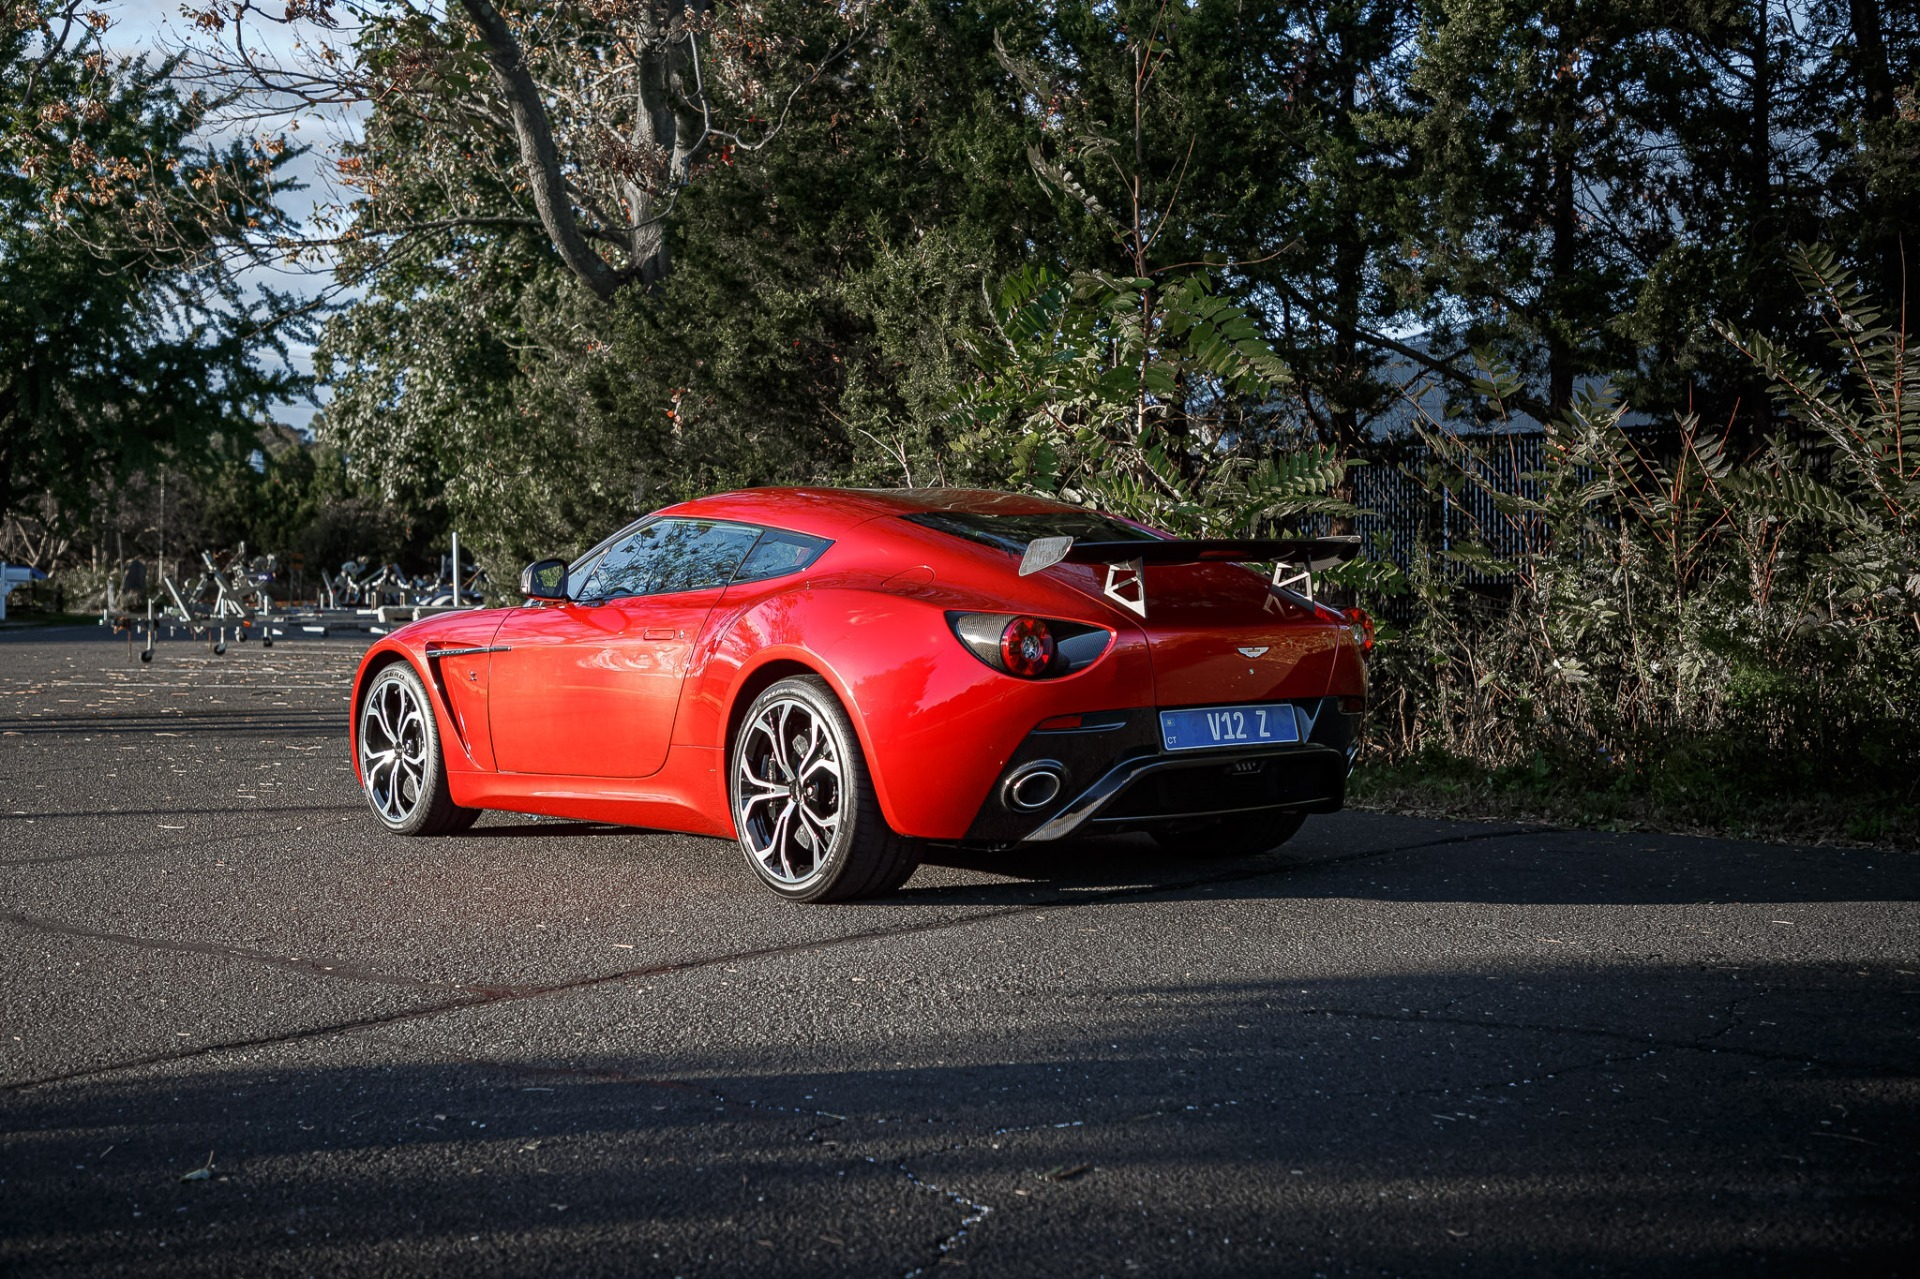 Used 2013 Aston Martin V12 Zagato Coupe For Sale In Westport, CT 3181_p34